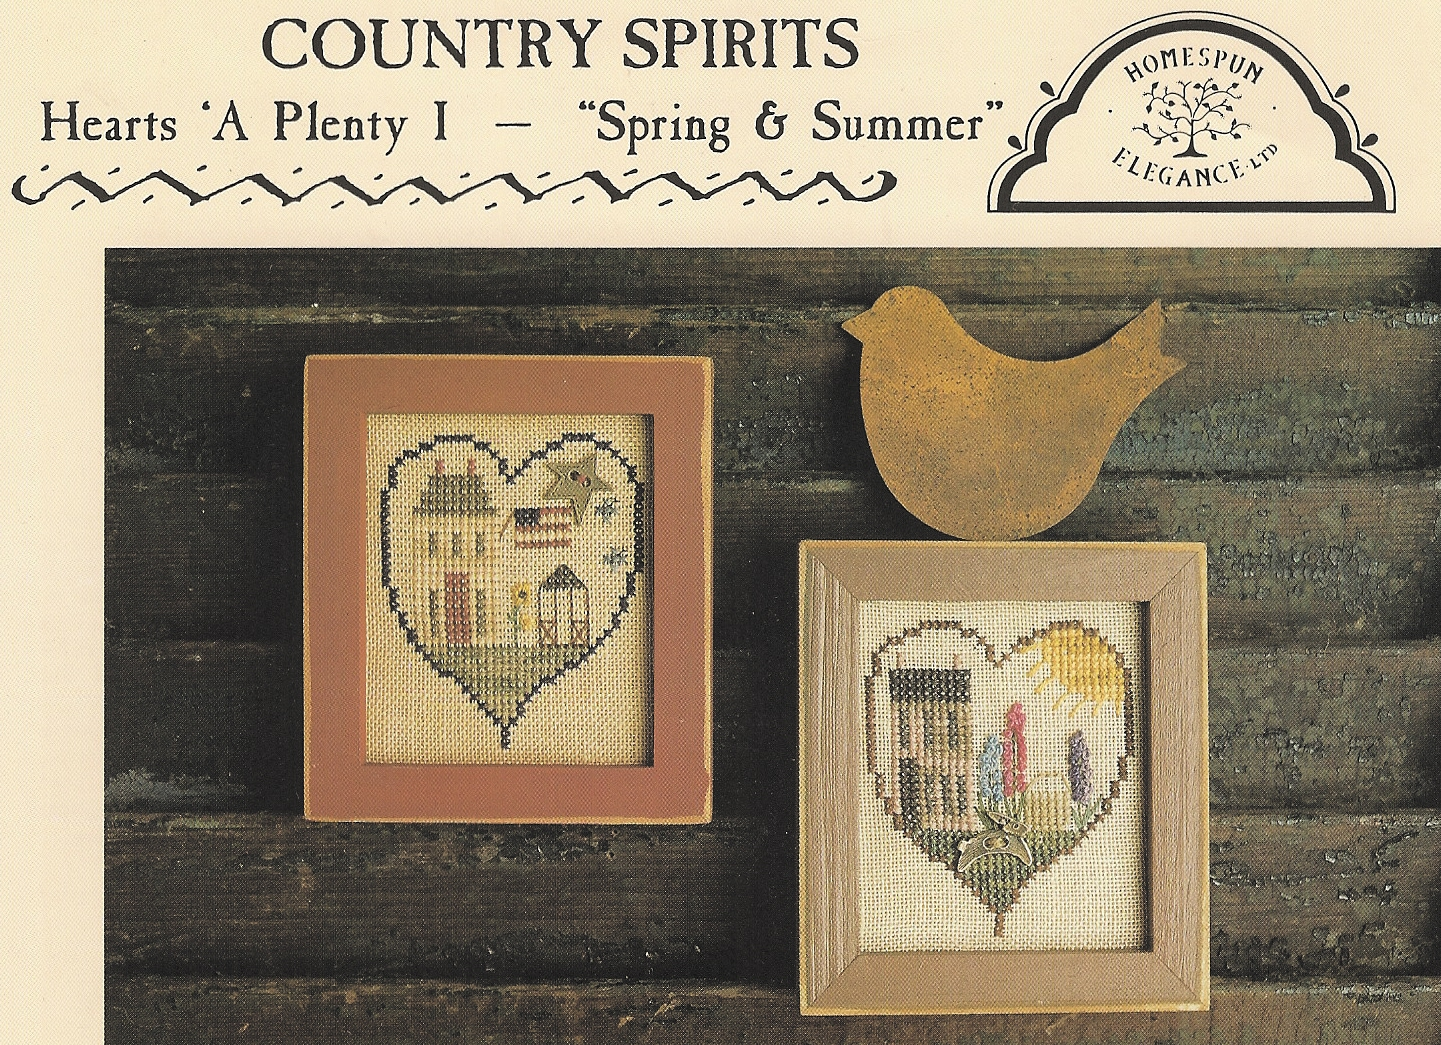 Homespun Elegance - Country Spirits Collection - Hearts A Plenty I - Spring and Summer